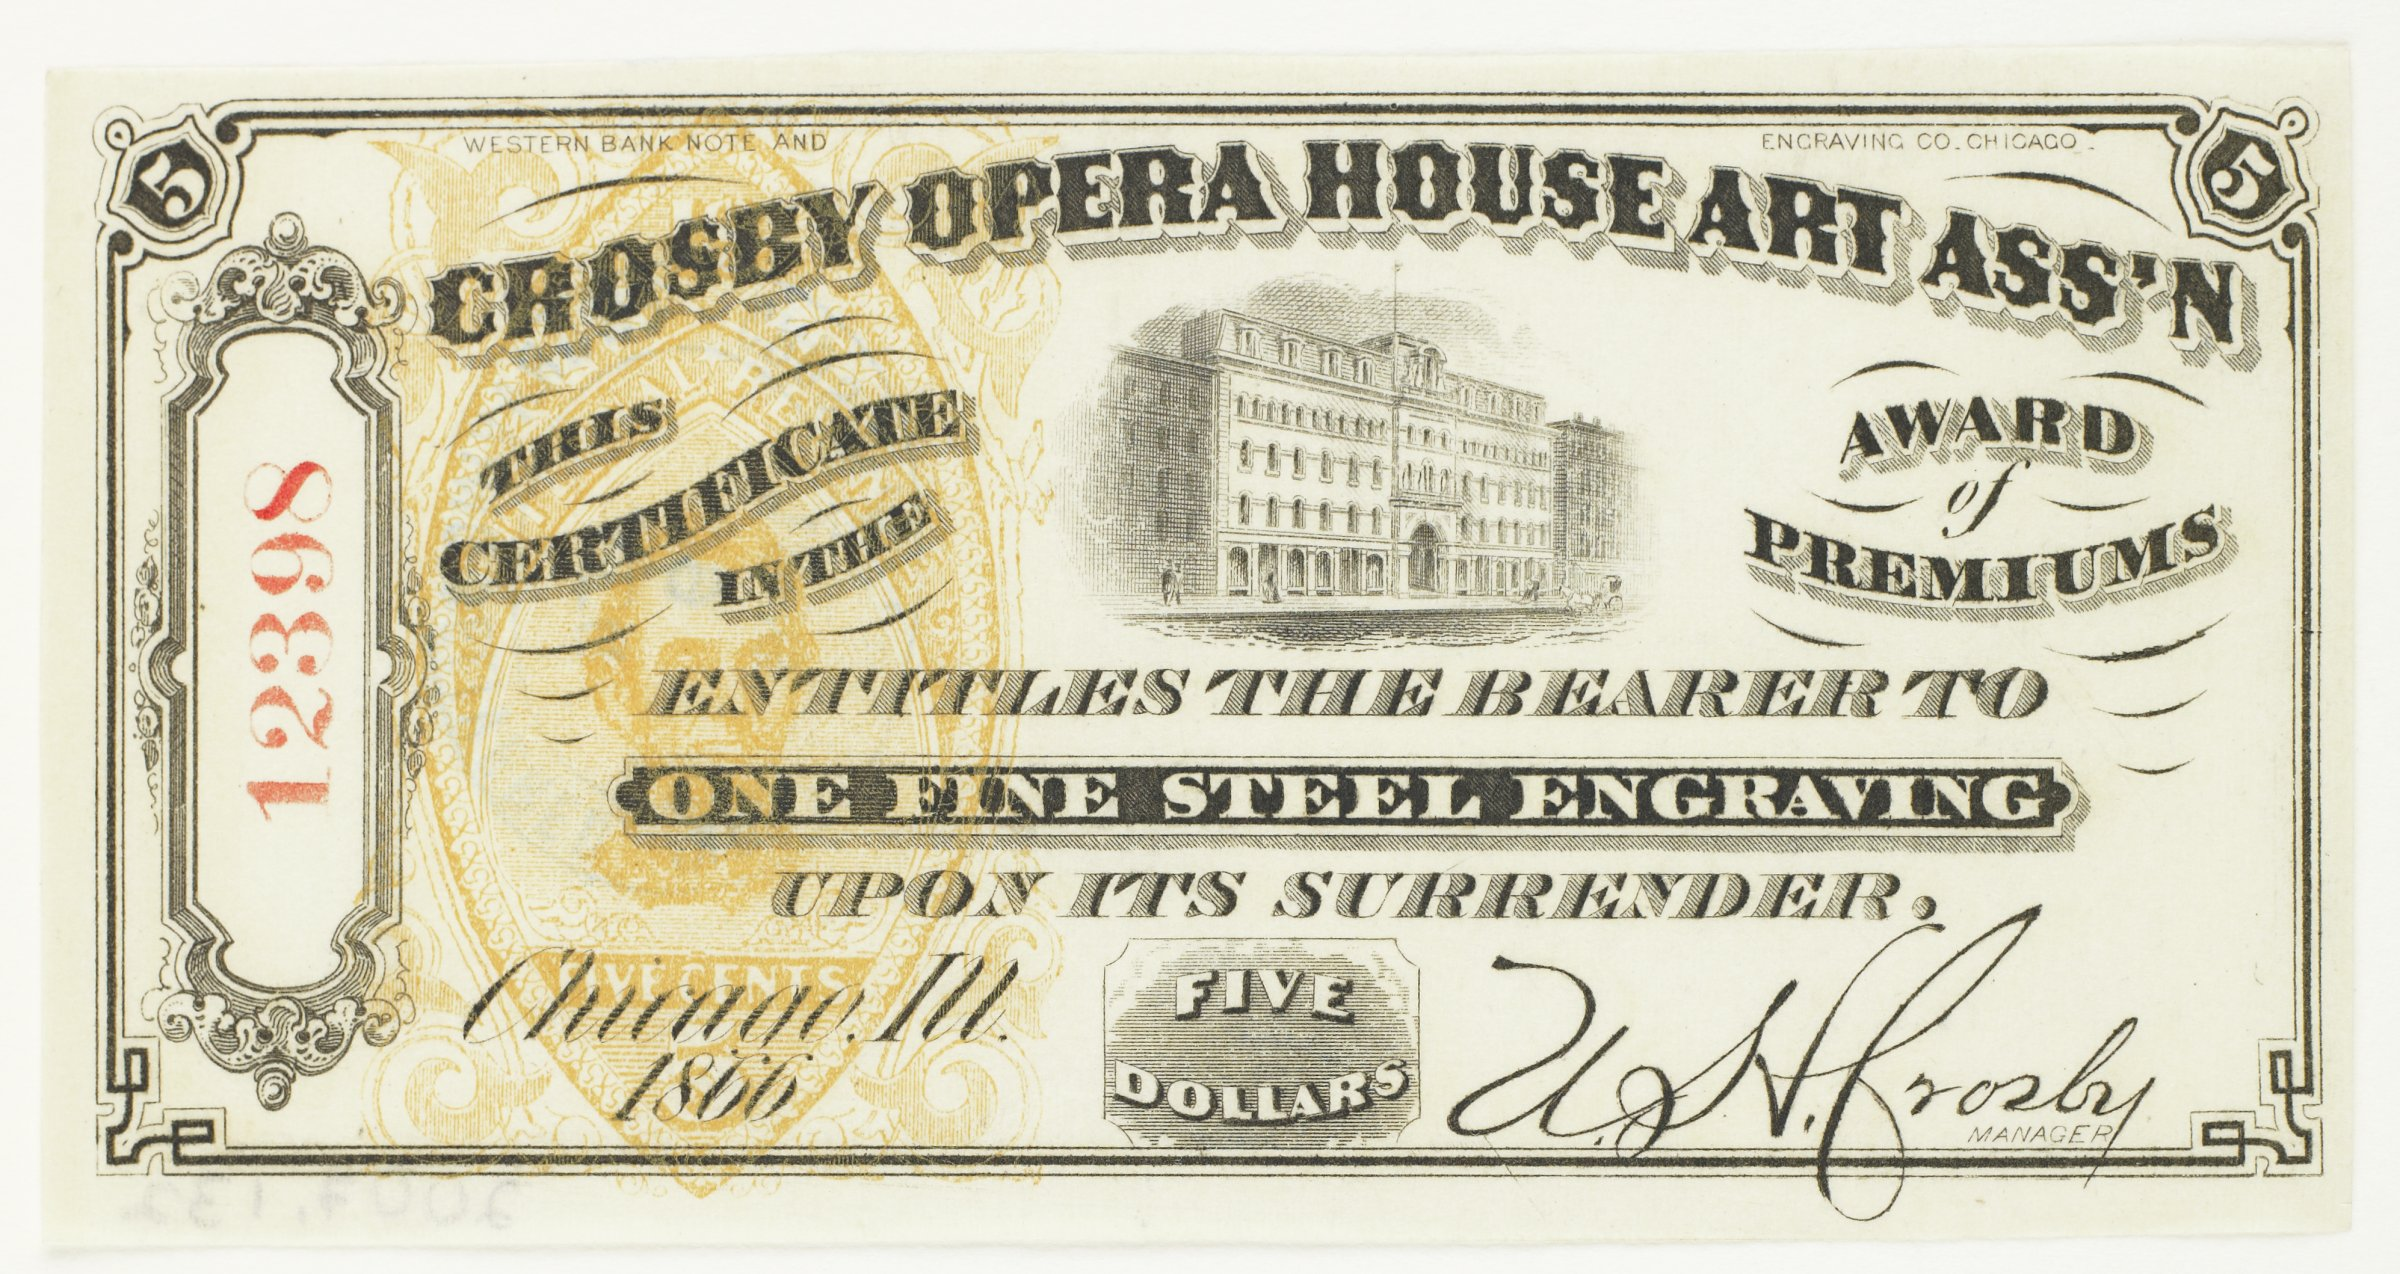 "**Obverse:  All within decorative border, number ""5"" within shield at upper left and right corners; decorative panel at far left with number ""12398"" (vertically aligned and printed in red ink) / WESTERN BANK NOTE AND (long space) ENGRAVING CO. CHICAGO / CROSBY OPERA HOUSE ART ASS'N / THIS / CERTIFICATE / IN THE / [central image of Crosby Opera House] / AWARD / of / PREMIUMS / ENTITLES THE BEARER TO / ONE FINE STEEL ENGRAVING / UPON ITS SURRENDER.  / Chicago . Ill. / 1866 /  FIVE / DOLLARS / [mechanically printed signature] U. H. Crosby  / MANAGER; faux watermark at left, printed in orange, within a decorative marquise-shaped border, INTERNAL * REVENUE / [bust portrait Abraham Lincoln looking right] / FIVE CENTS / 5